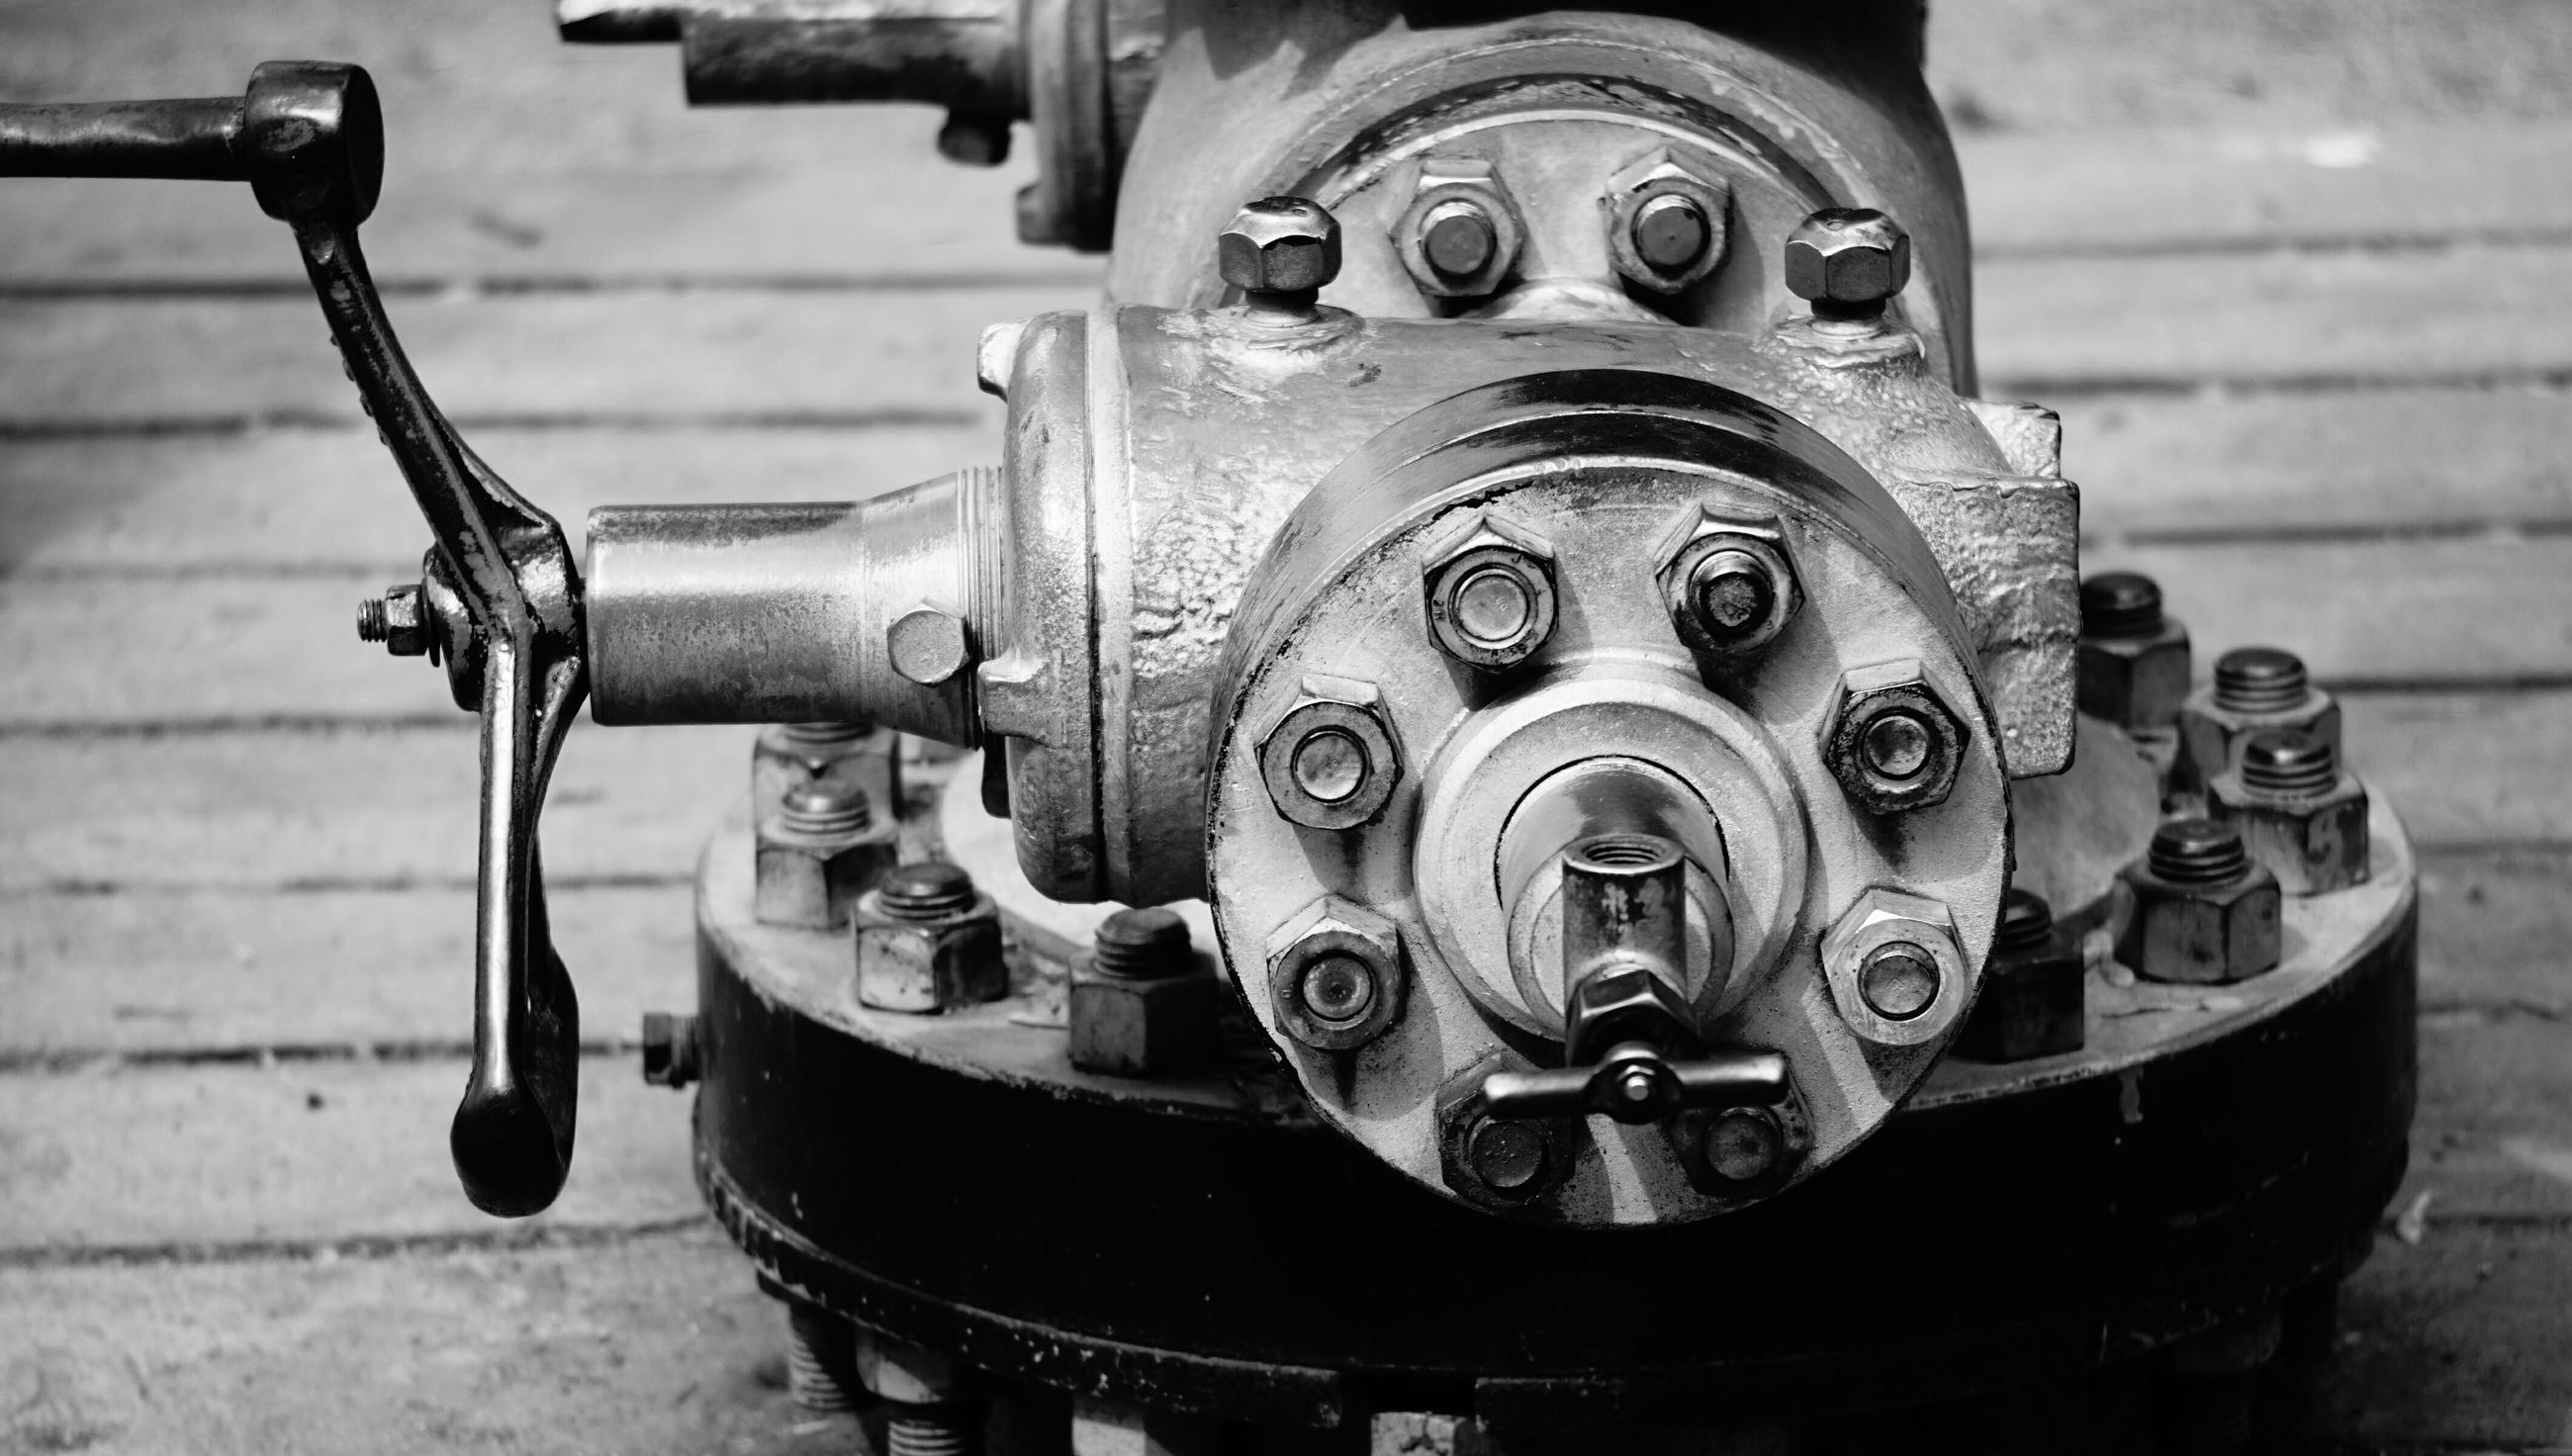 metal, close-up, old-fashioned, focus on foreground, metallic, indoors, machine part, machinery, retro styled, old, equipment, technology, still life, no people, rusty, part of, day, wheel, antique, transportation